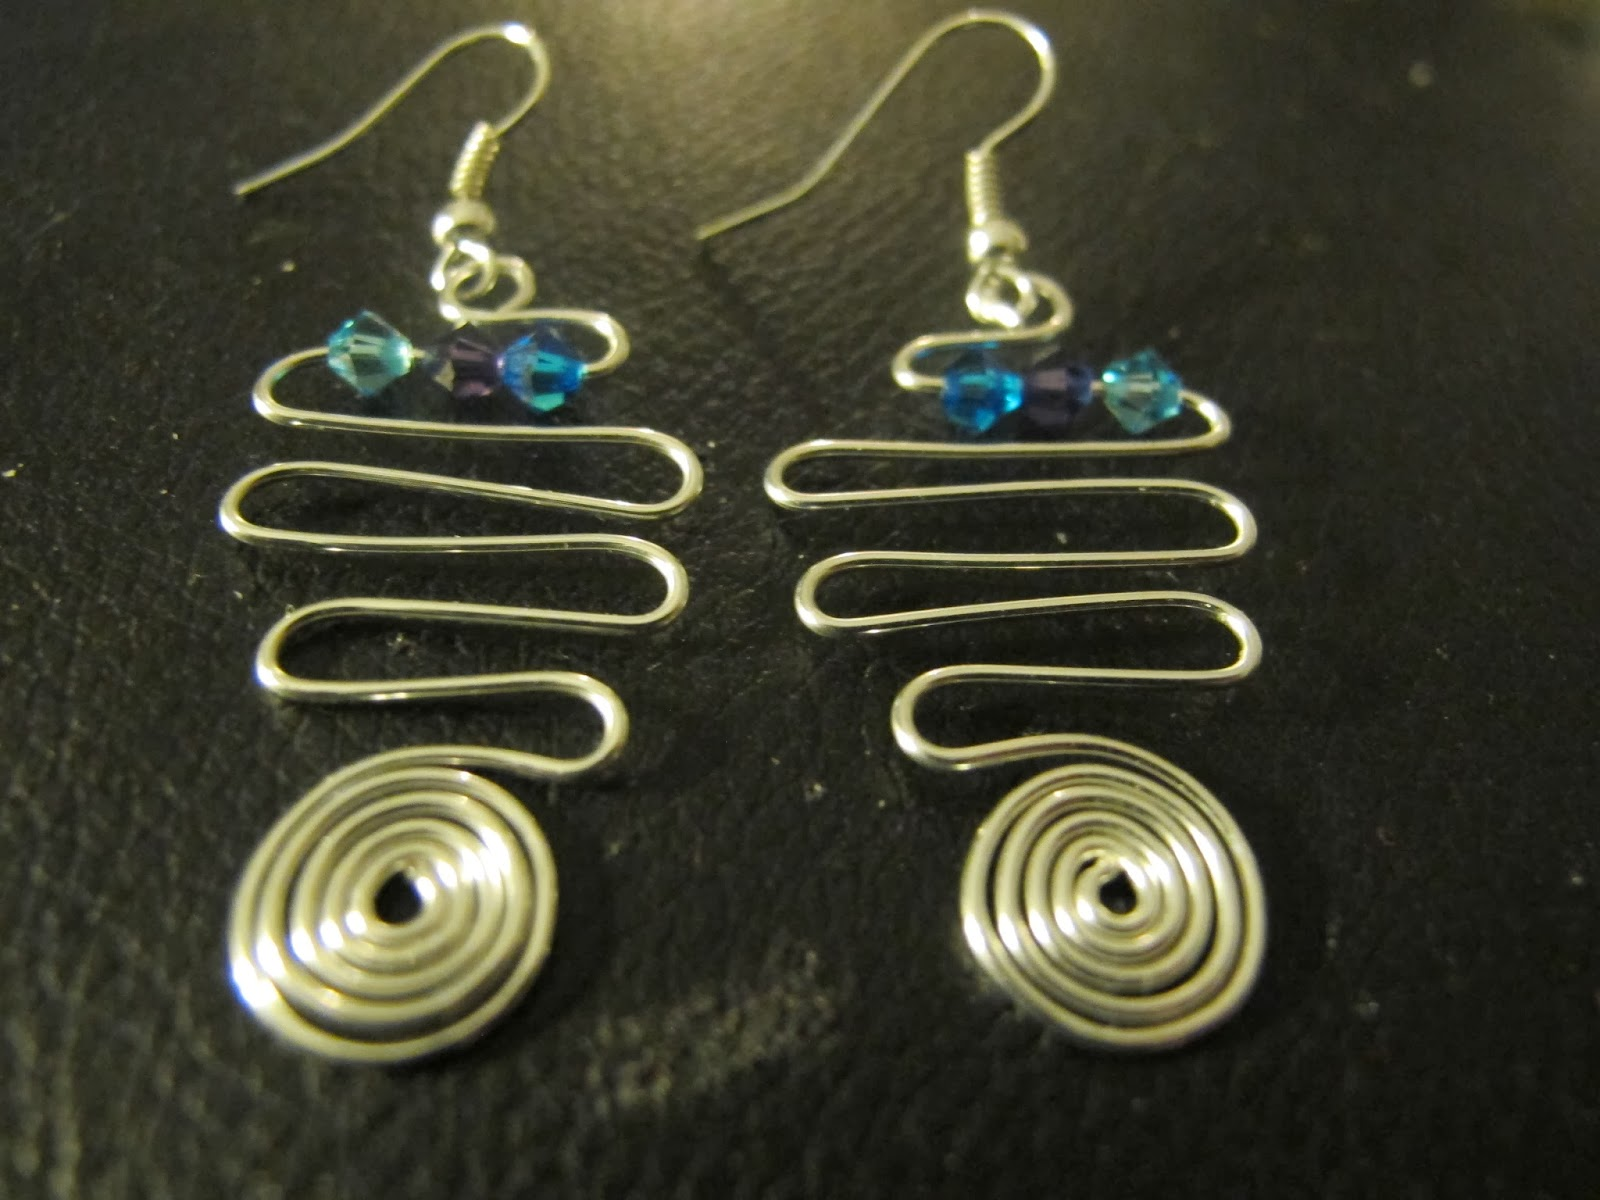 Naomi's Designs: Handmade Wire Jewelry: Yet more silver ...